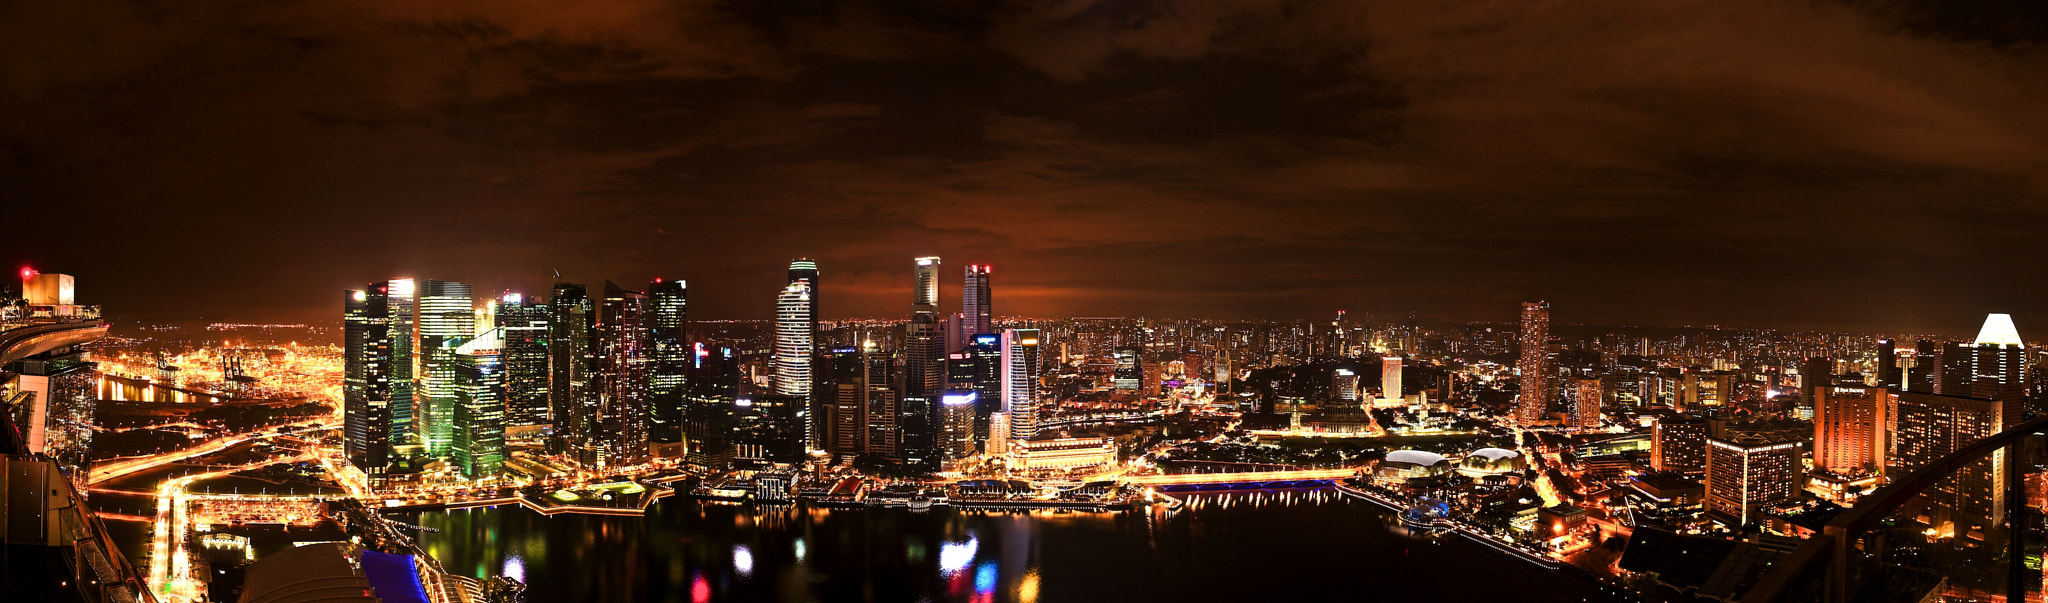 Photograph The Lion City - View Of Marina Bay by Sean Cheng on 500px